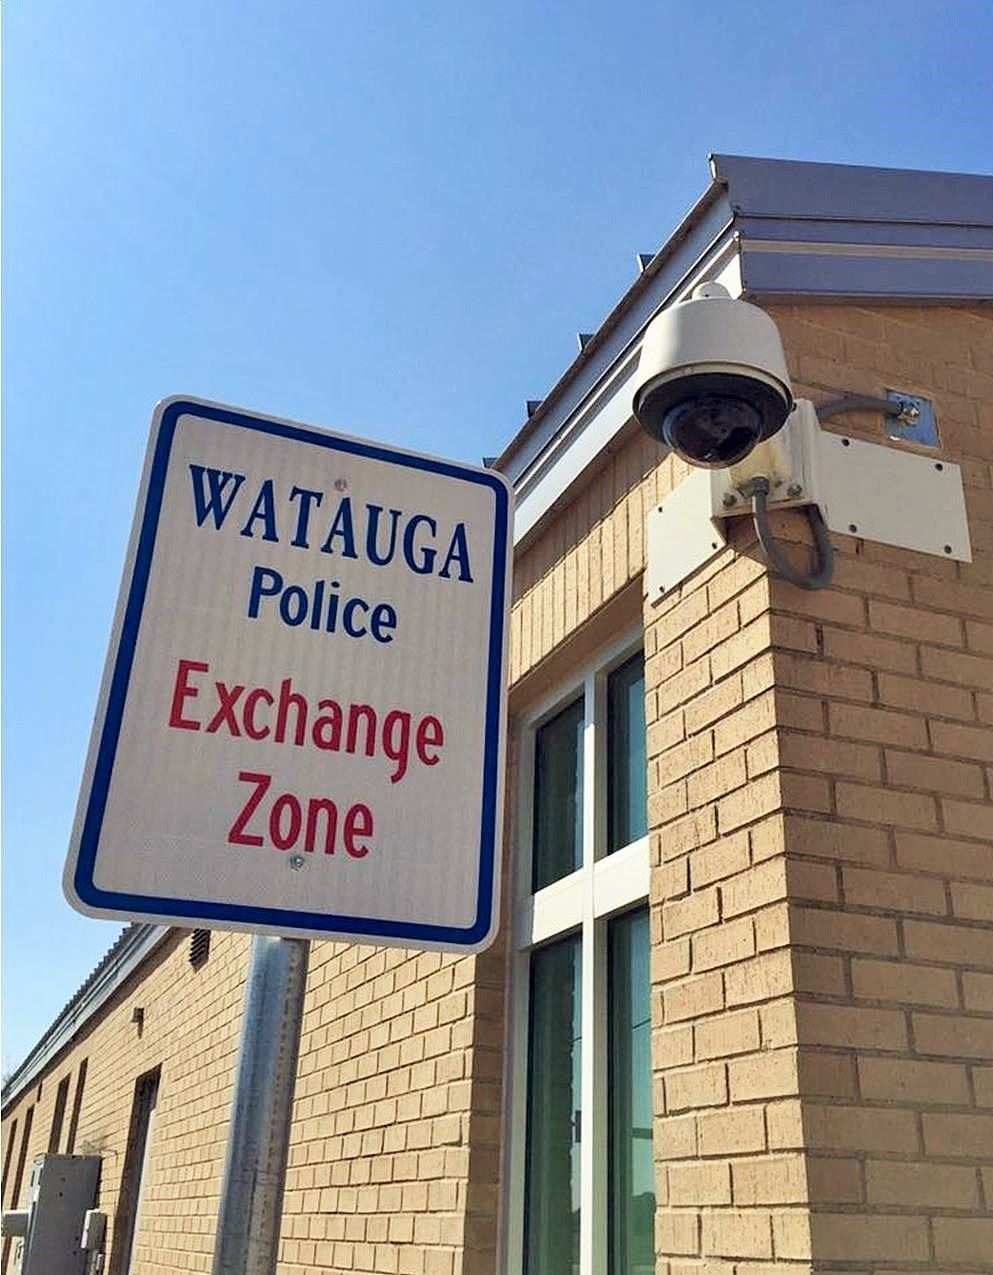 Exchange Zone